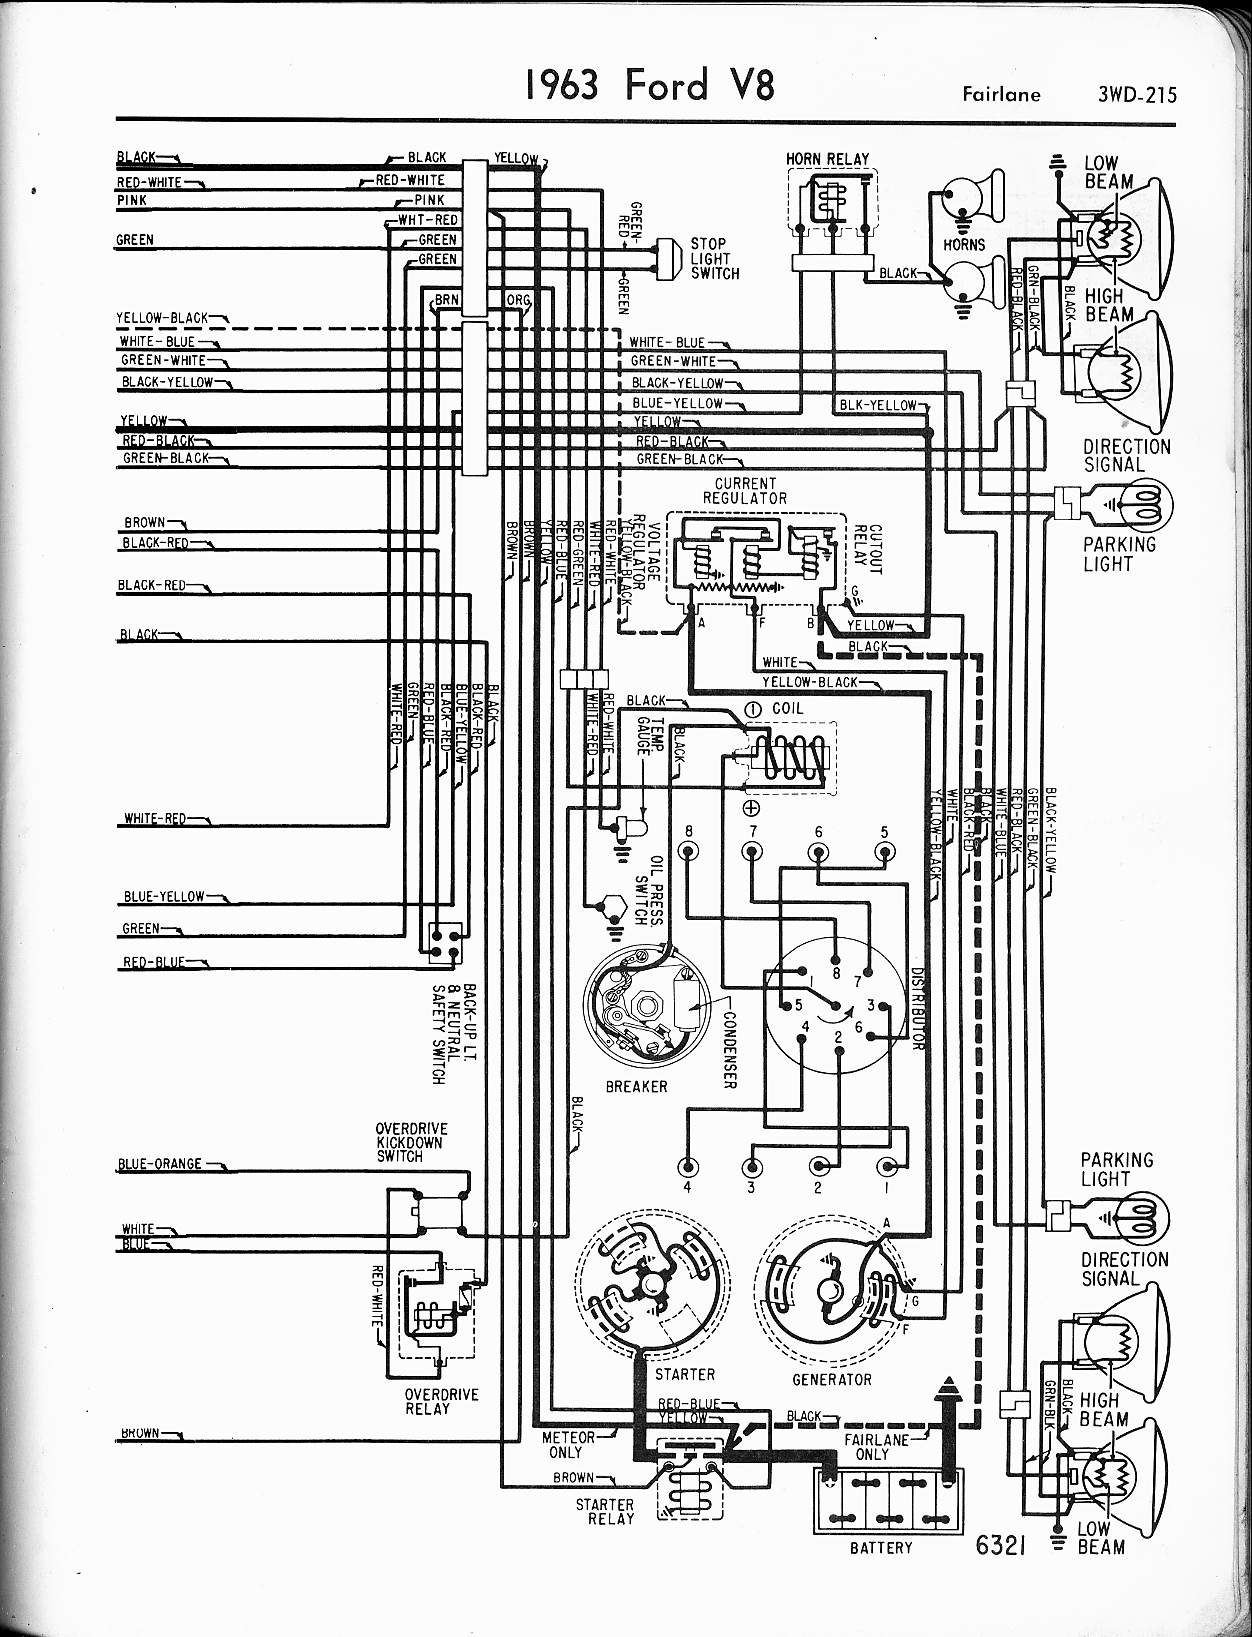 1955 ford fairlane wiring diagram wiring diagrams clicks57 65 ford wiring diagrams 1954 ford ignition wiring diagram 1955 ford fairlane wiring diagram